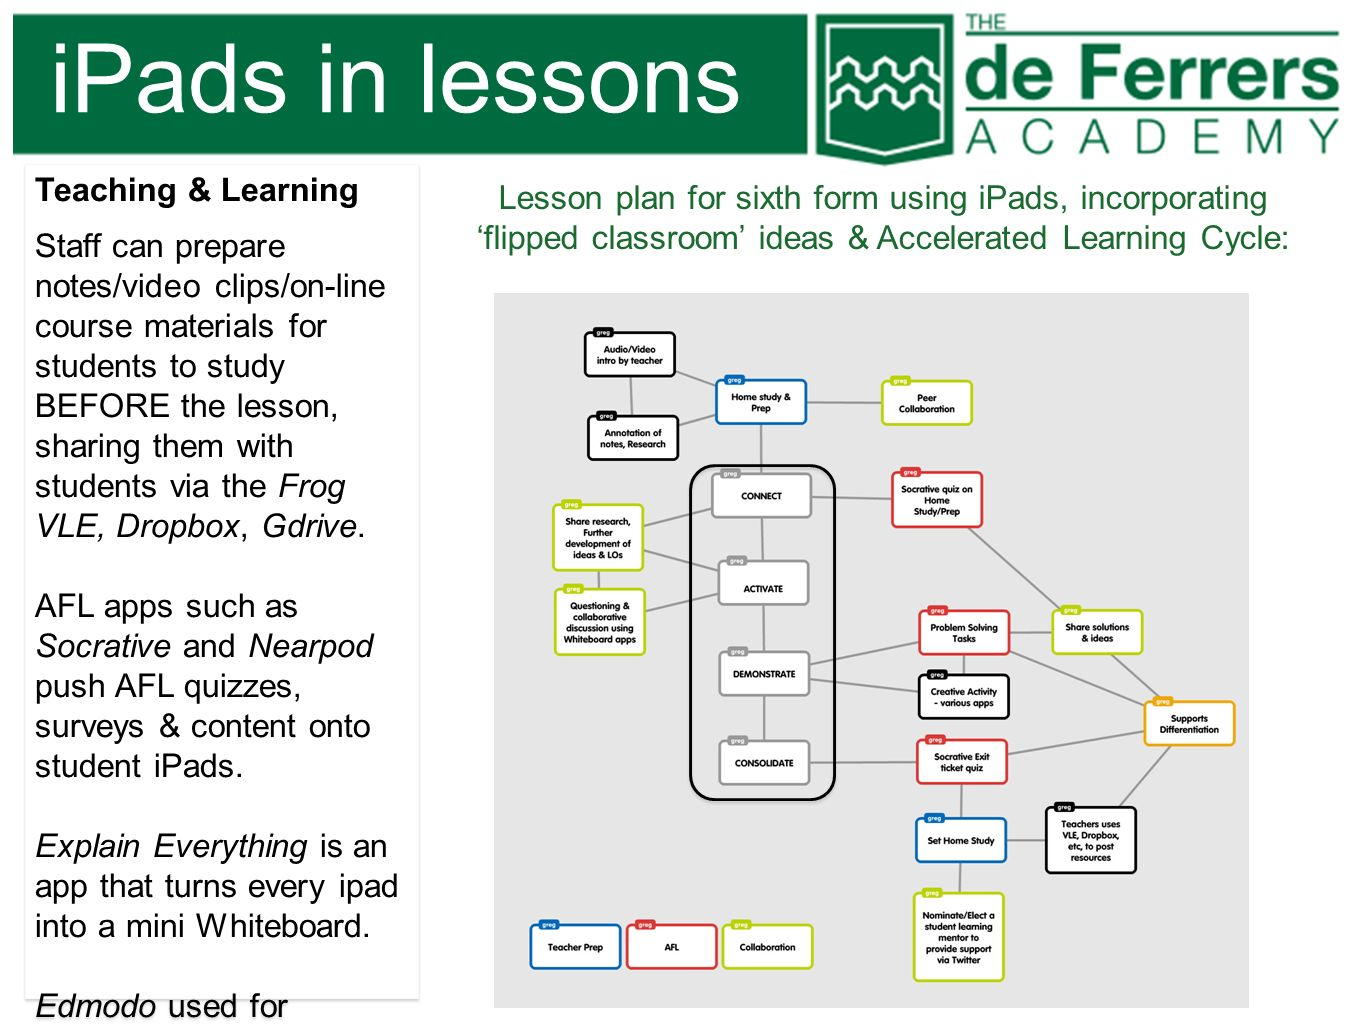 iPads in lessons Teaching & Learning Staff can prepare notes/video clips/on-line course materials for students to study BEFORE the lesson, sharing the